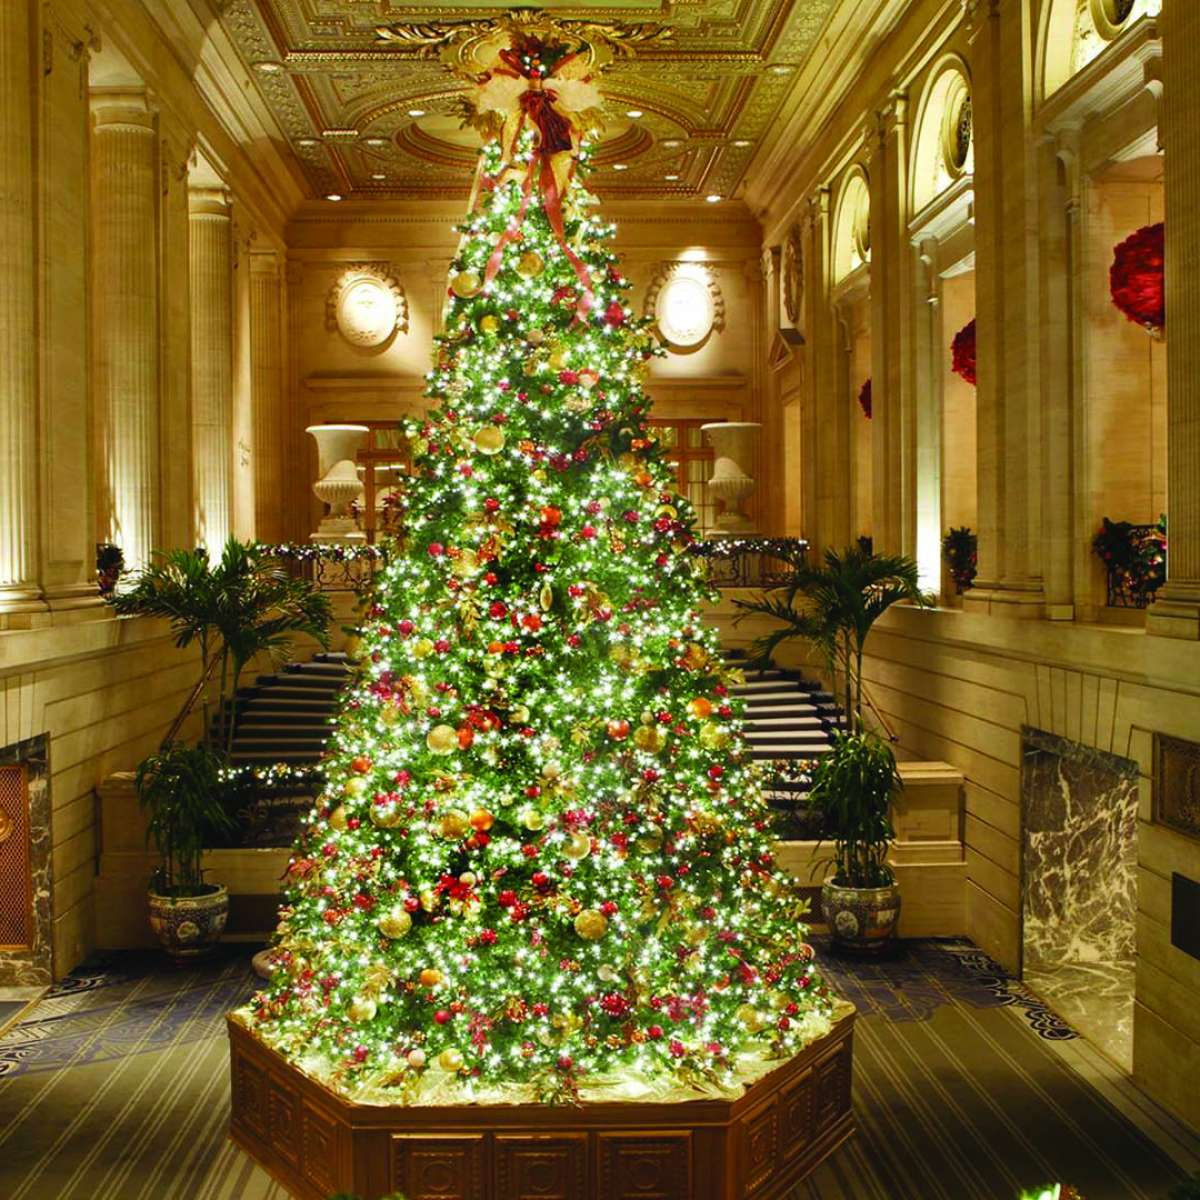 Chicago Christmas.Five Must See Christmas Trees In The Chicago Loop